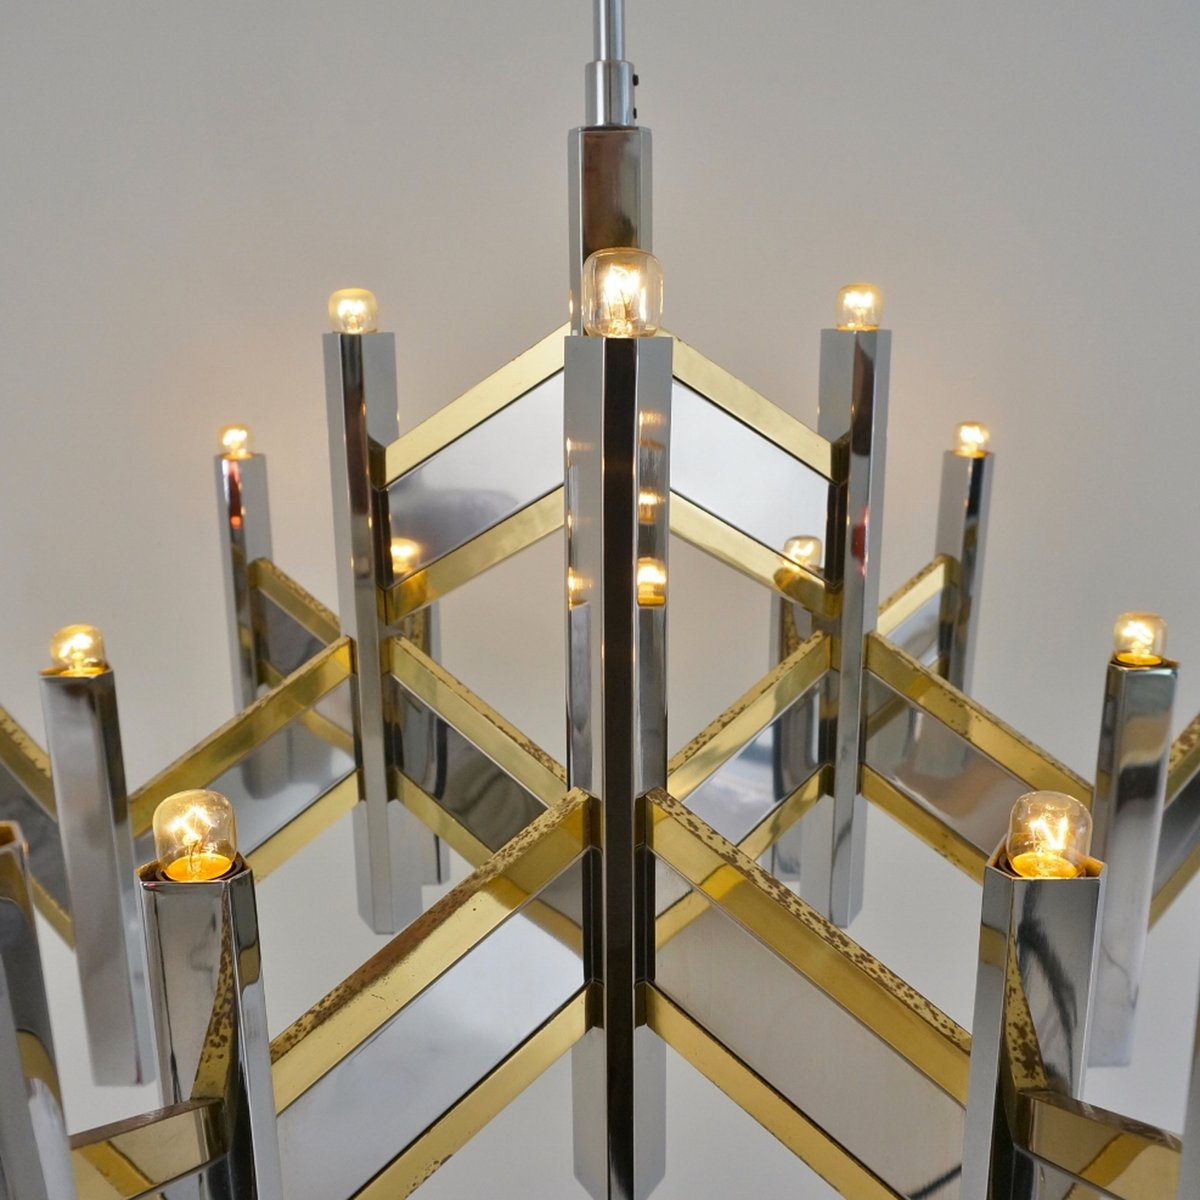 Vintage Chandelier With 15 Lights By Gaetano Sciolari 5 Price 118 00 Regular 479